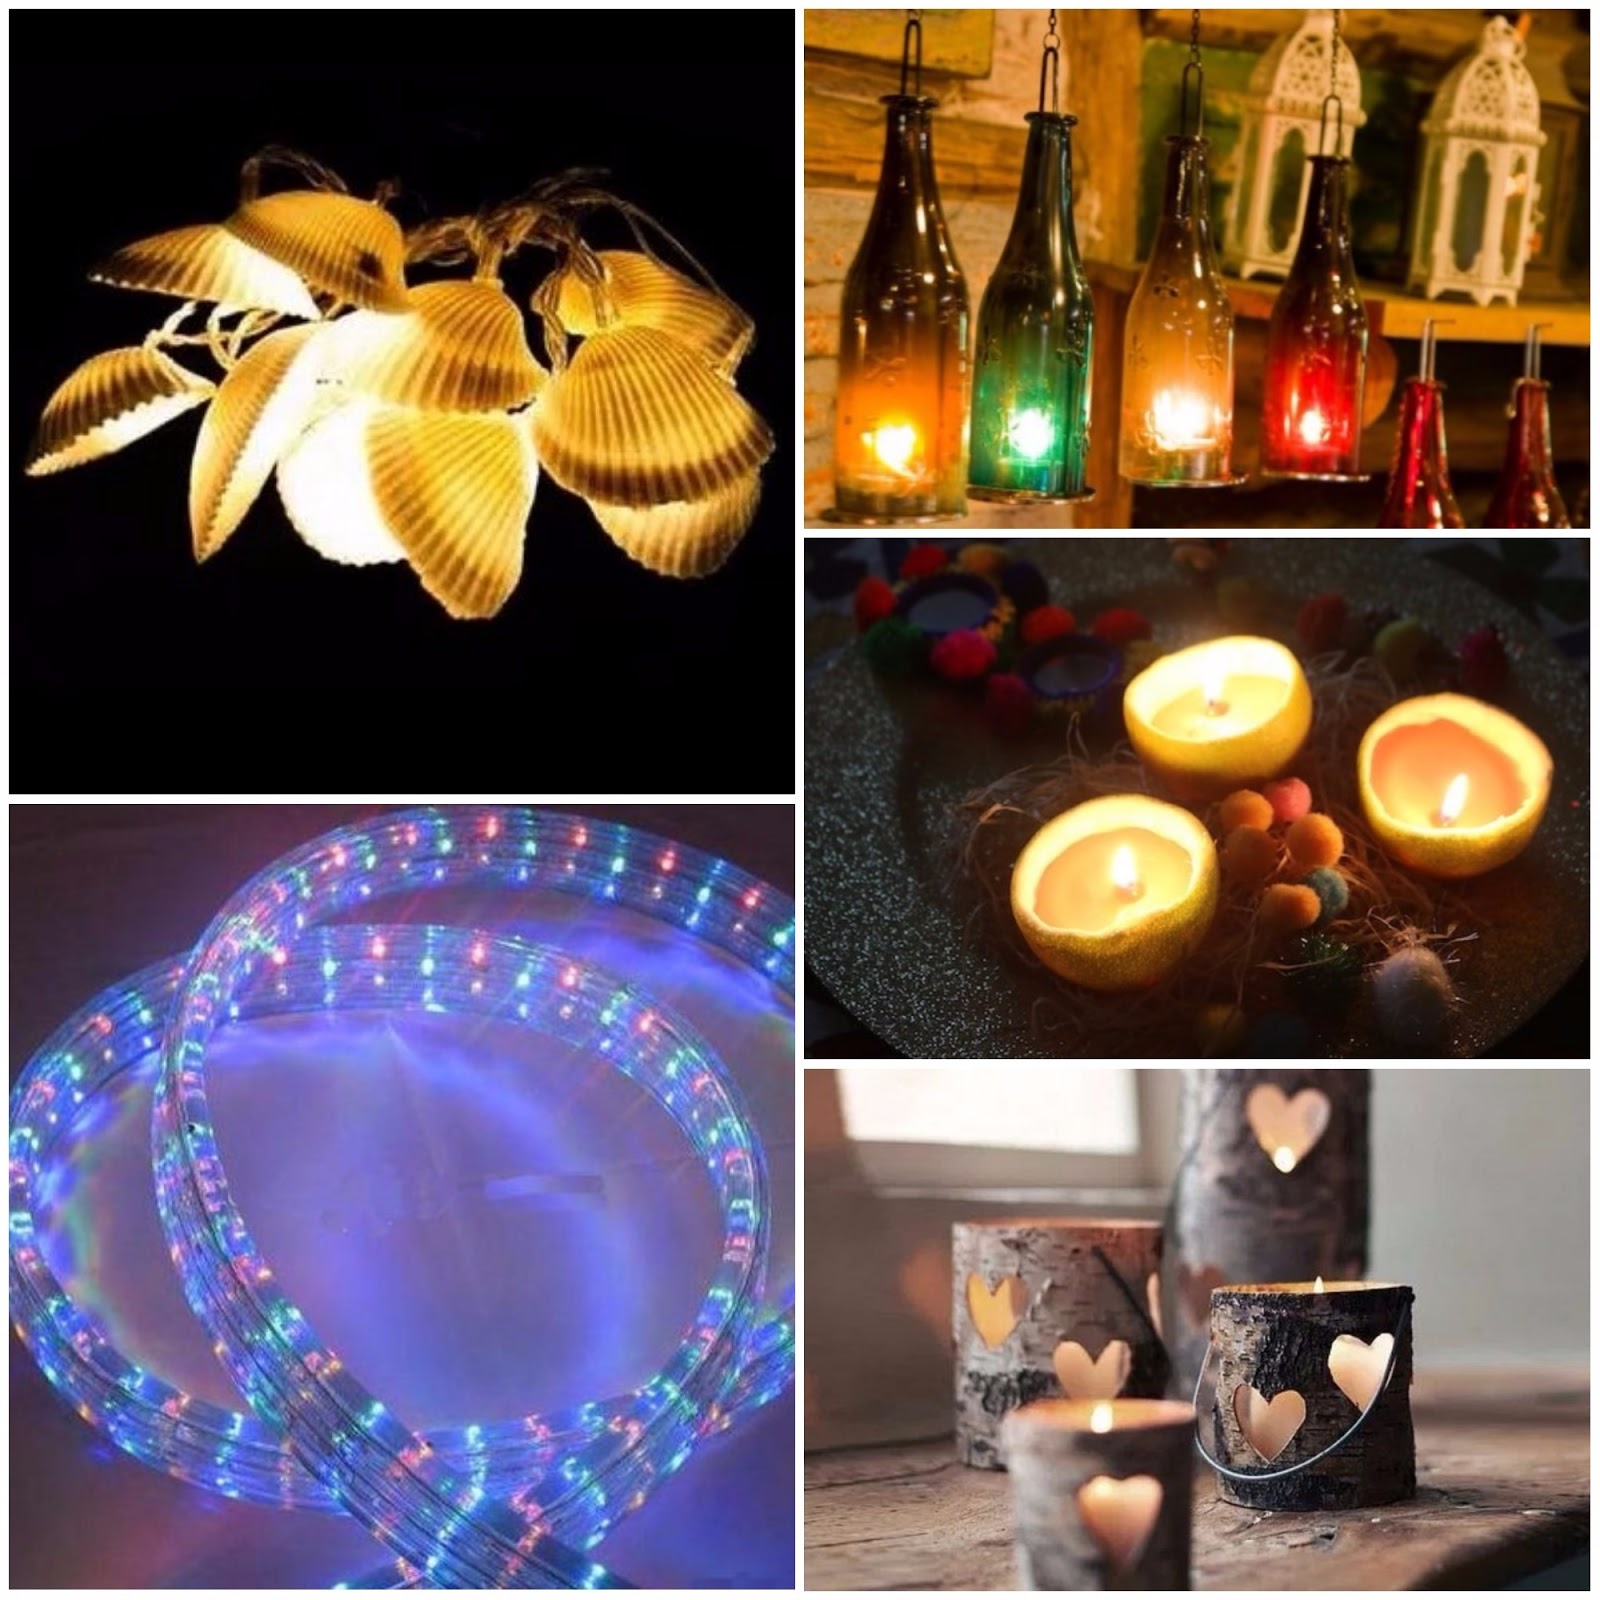 Best These are some unique and innovative idea for Diwali decoration Apart from this you can also try some new idea which can suit your requirement and budget